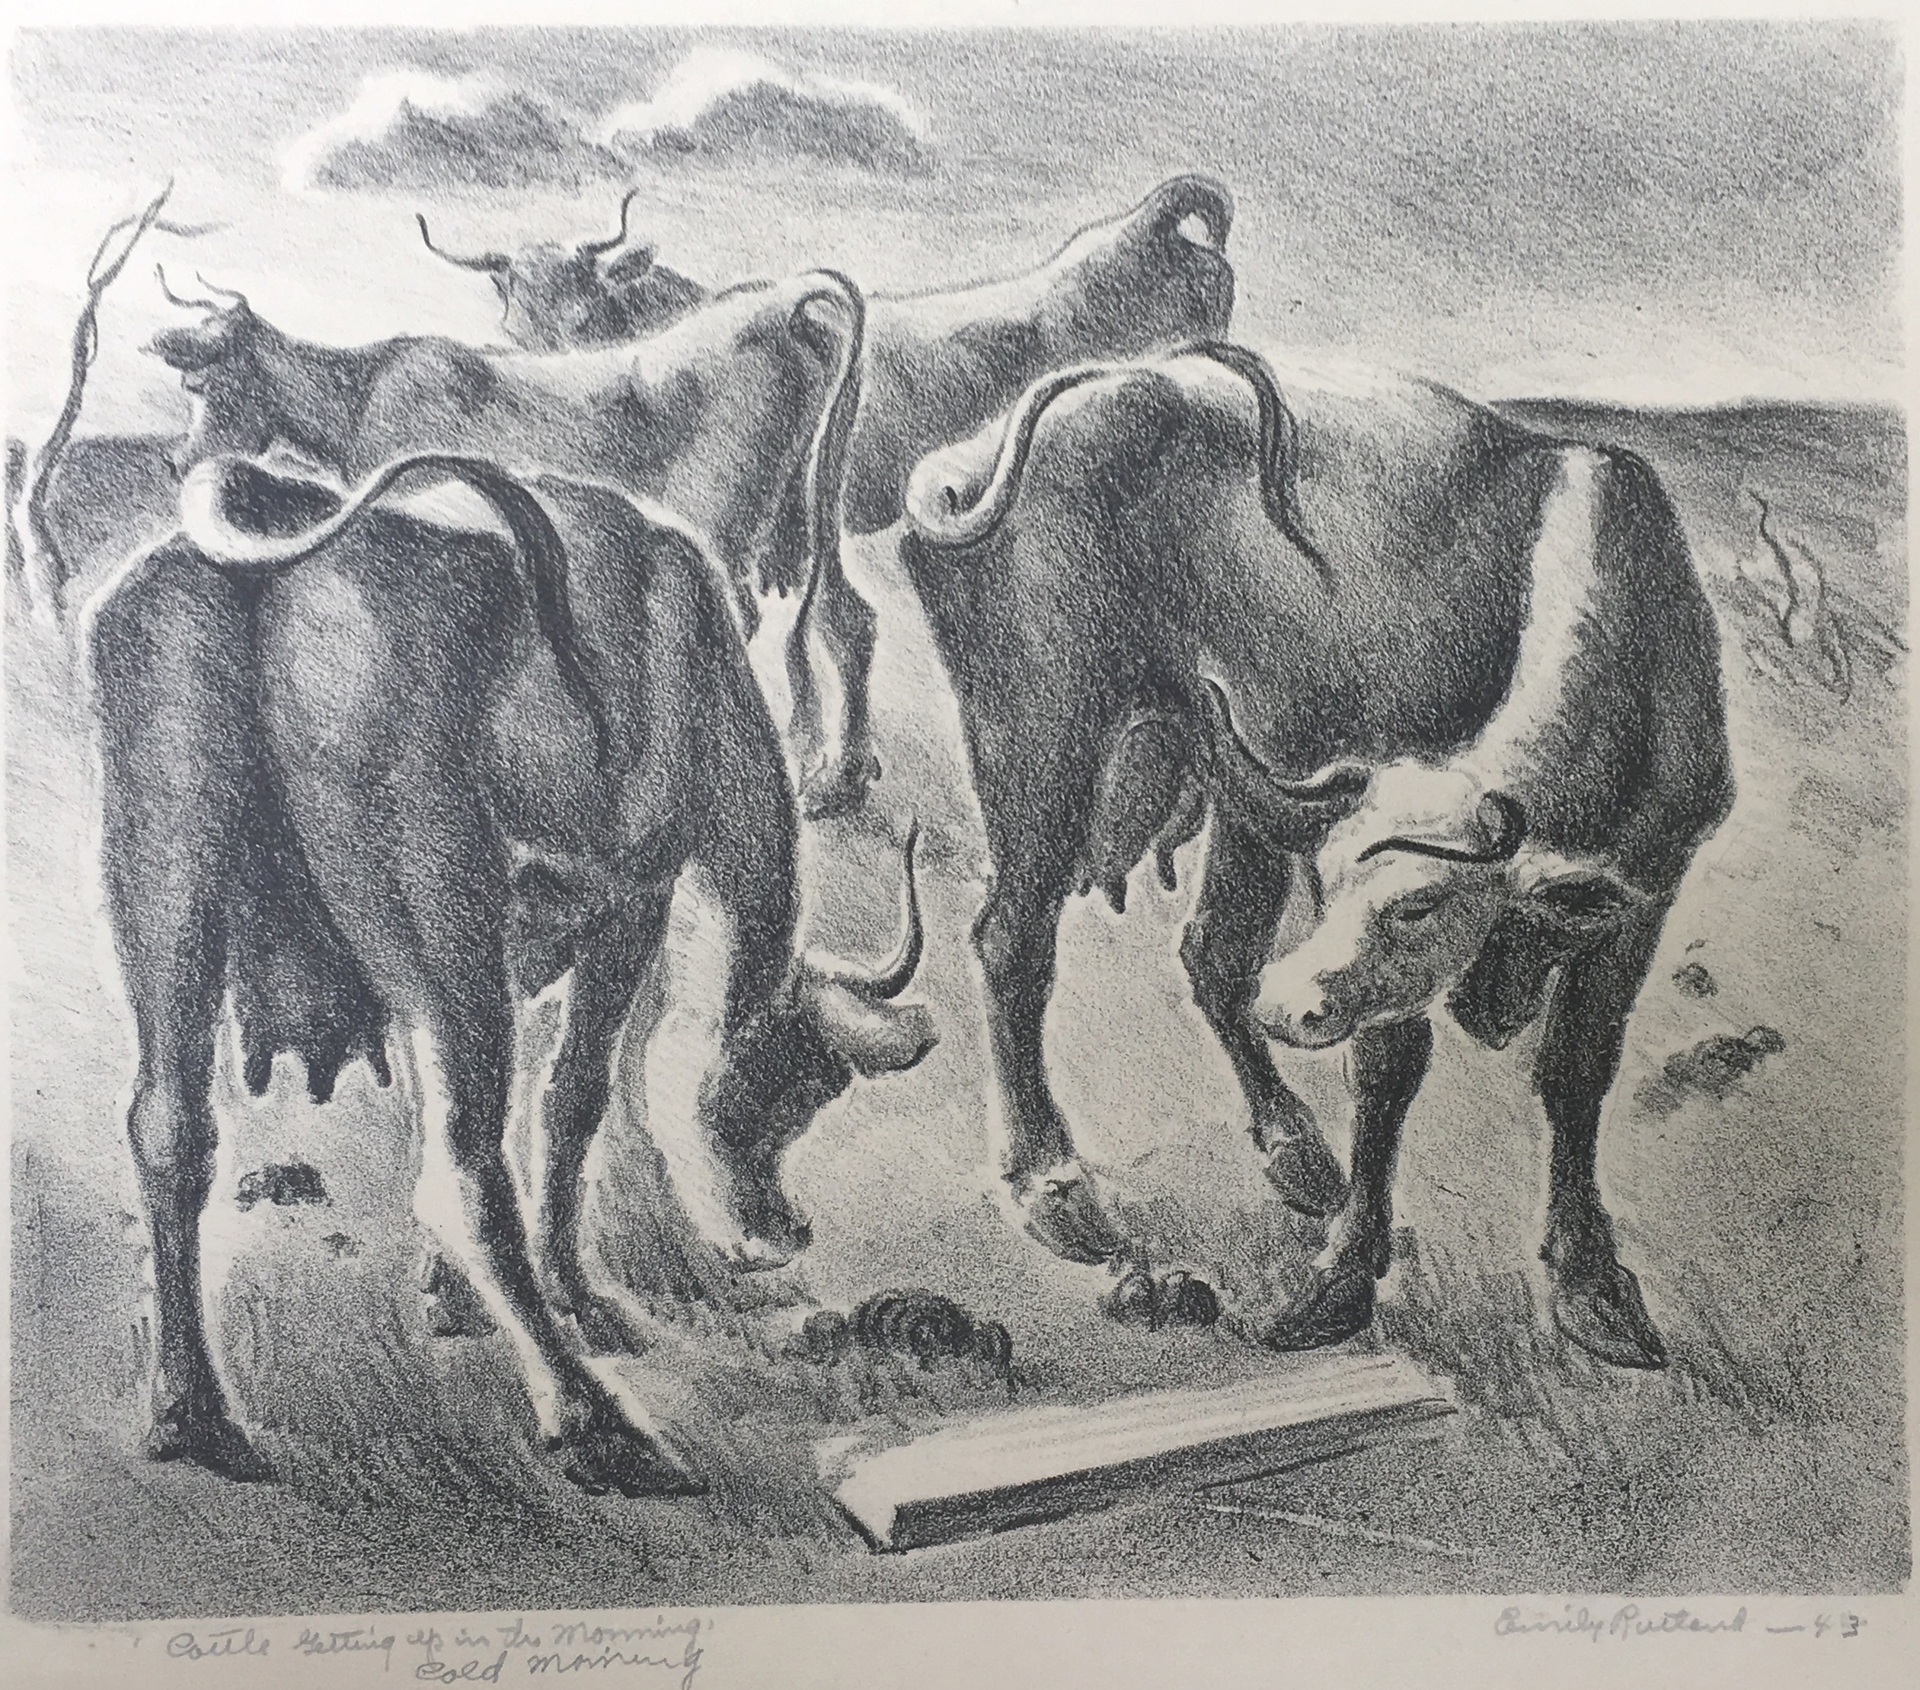 Cattle Getting Up, Cold Morning by Emily Rutland